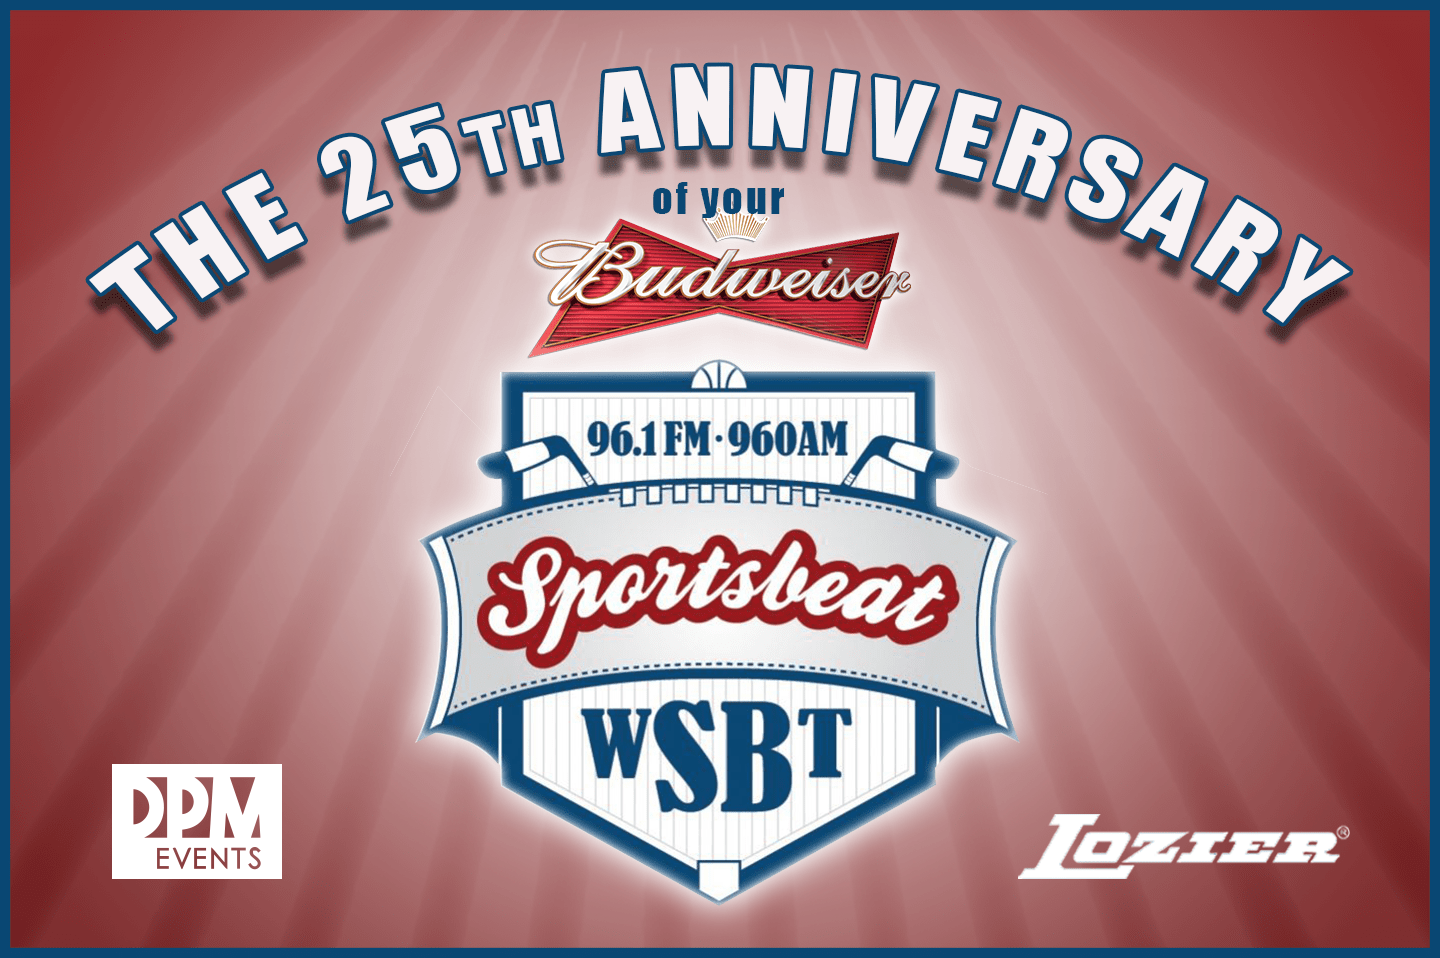 Sportsbeat 25th Anniversary